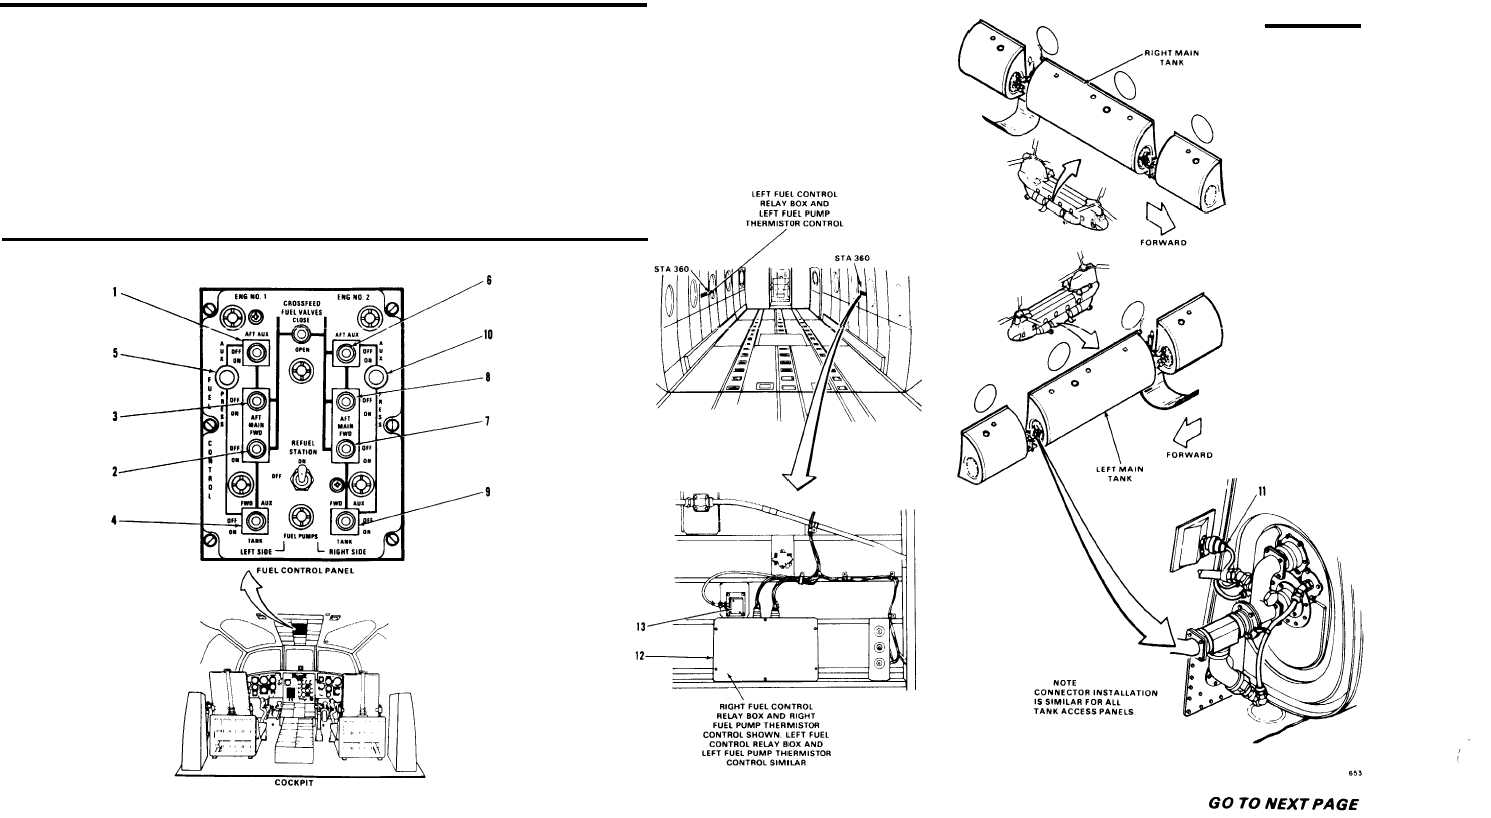 1980 corvette cooling fan wiring diagram